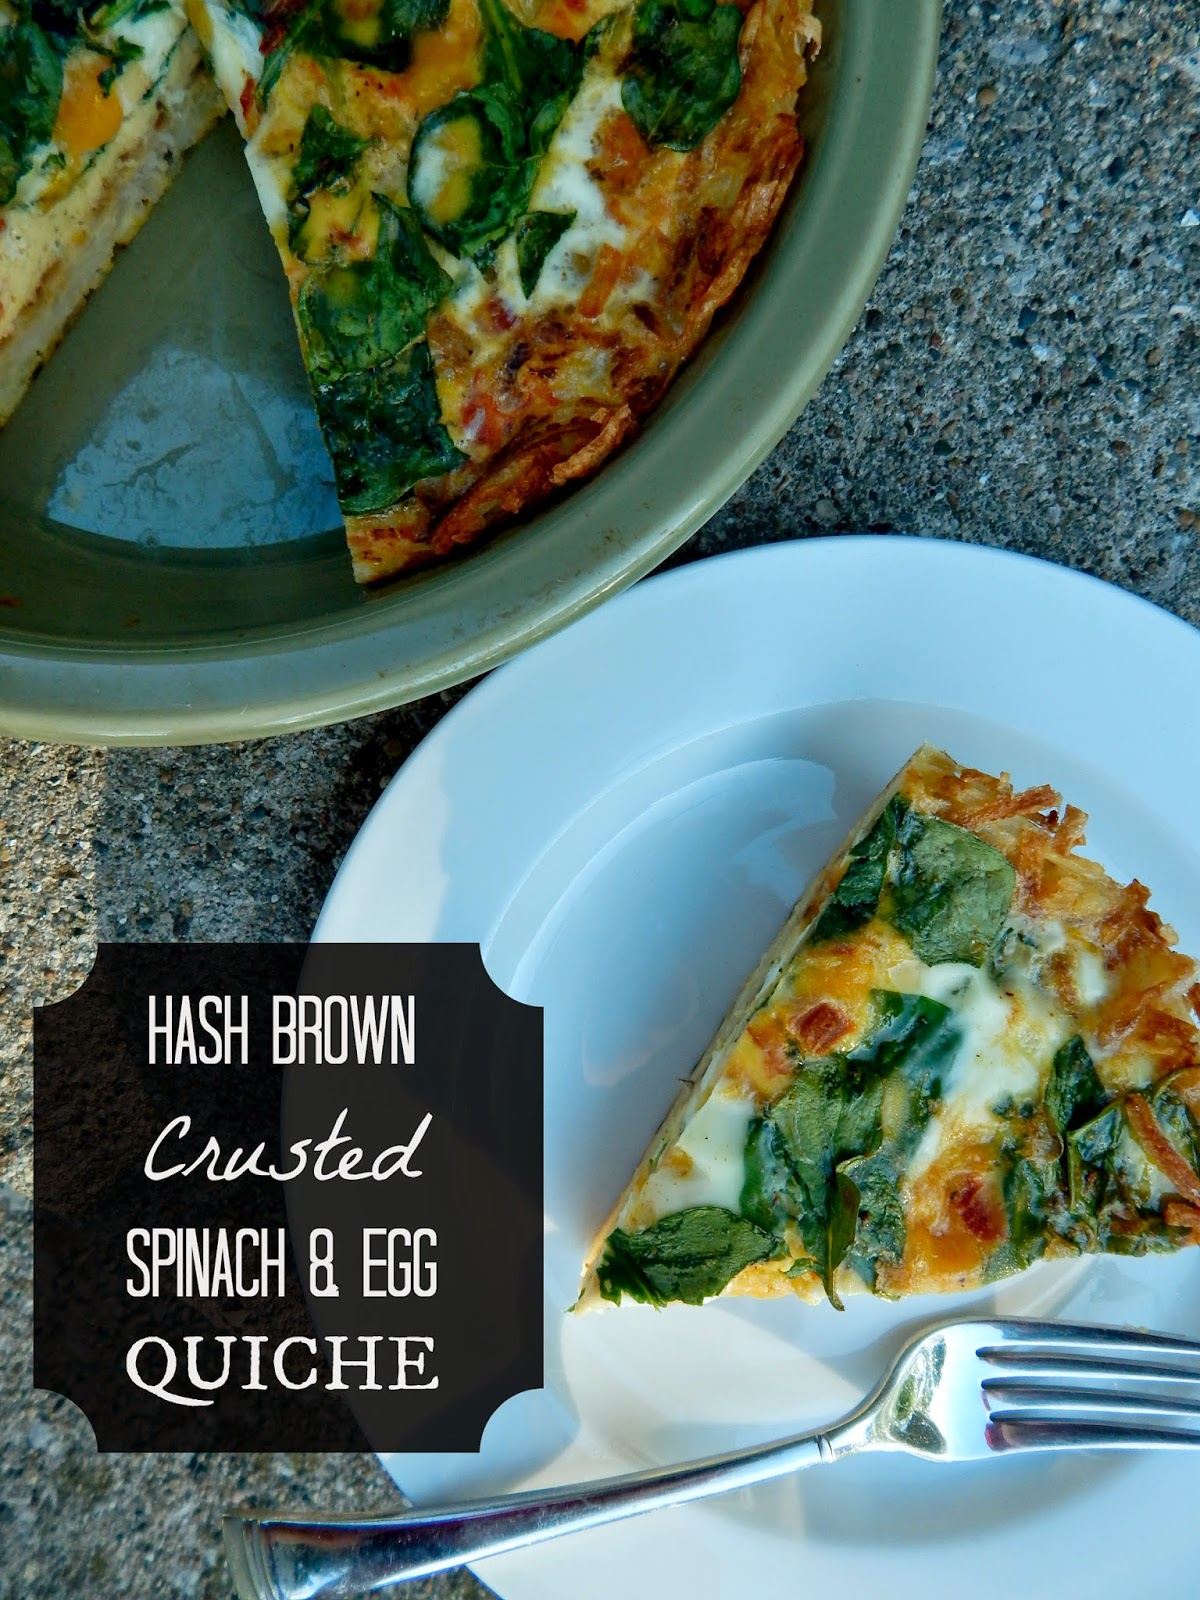 Hash Brown Crusted Spinach & Egg Quiche...a crispy bottom crust and a loaded egg filling!  Perfect for breakfast, brunch or even dinner. (sweetandsavoryfood.com)